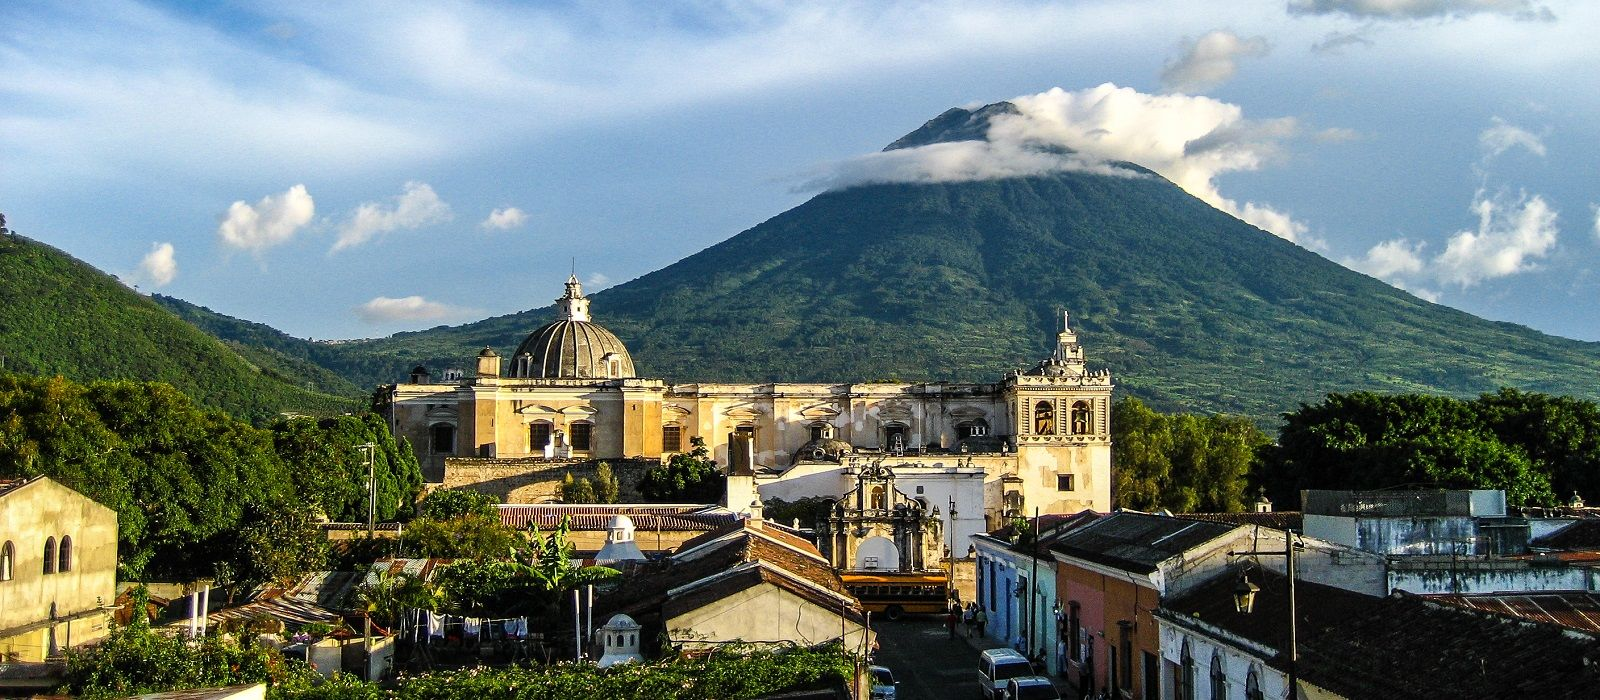 Mayan Mysteries and Adventure in Guatemala Tour Trip 2